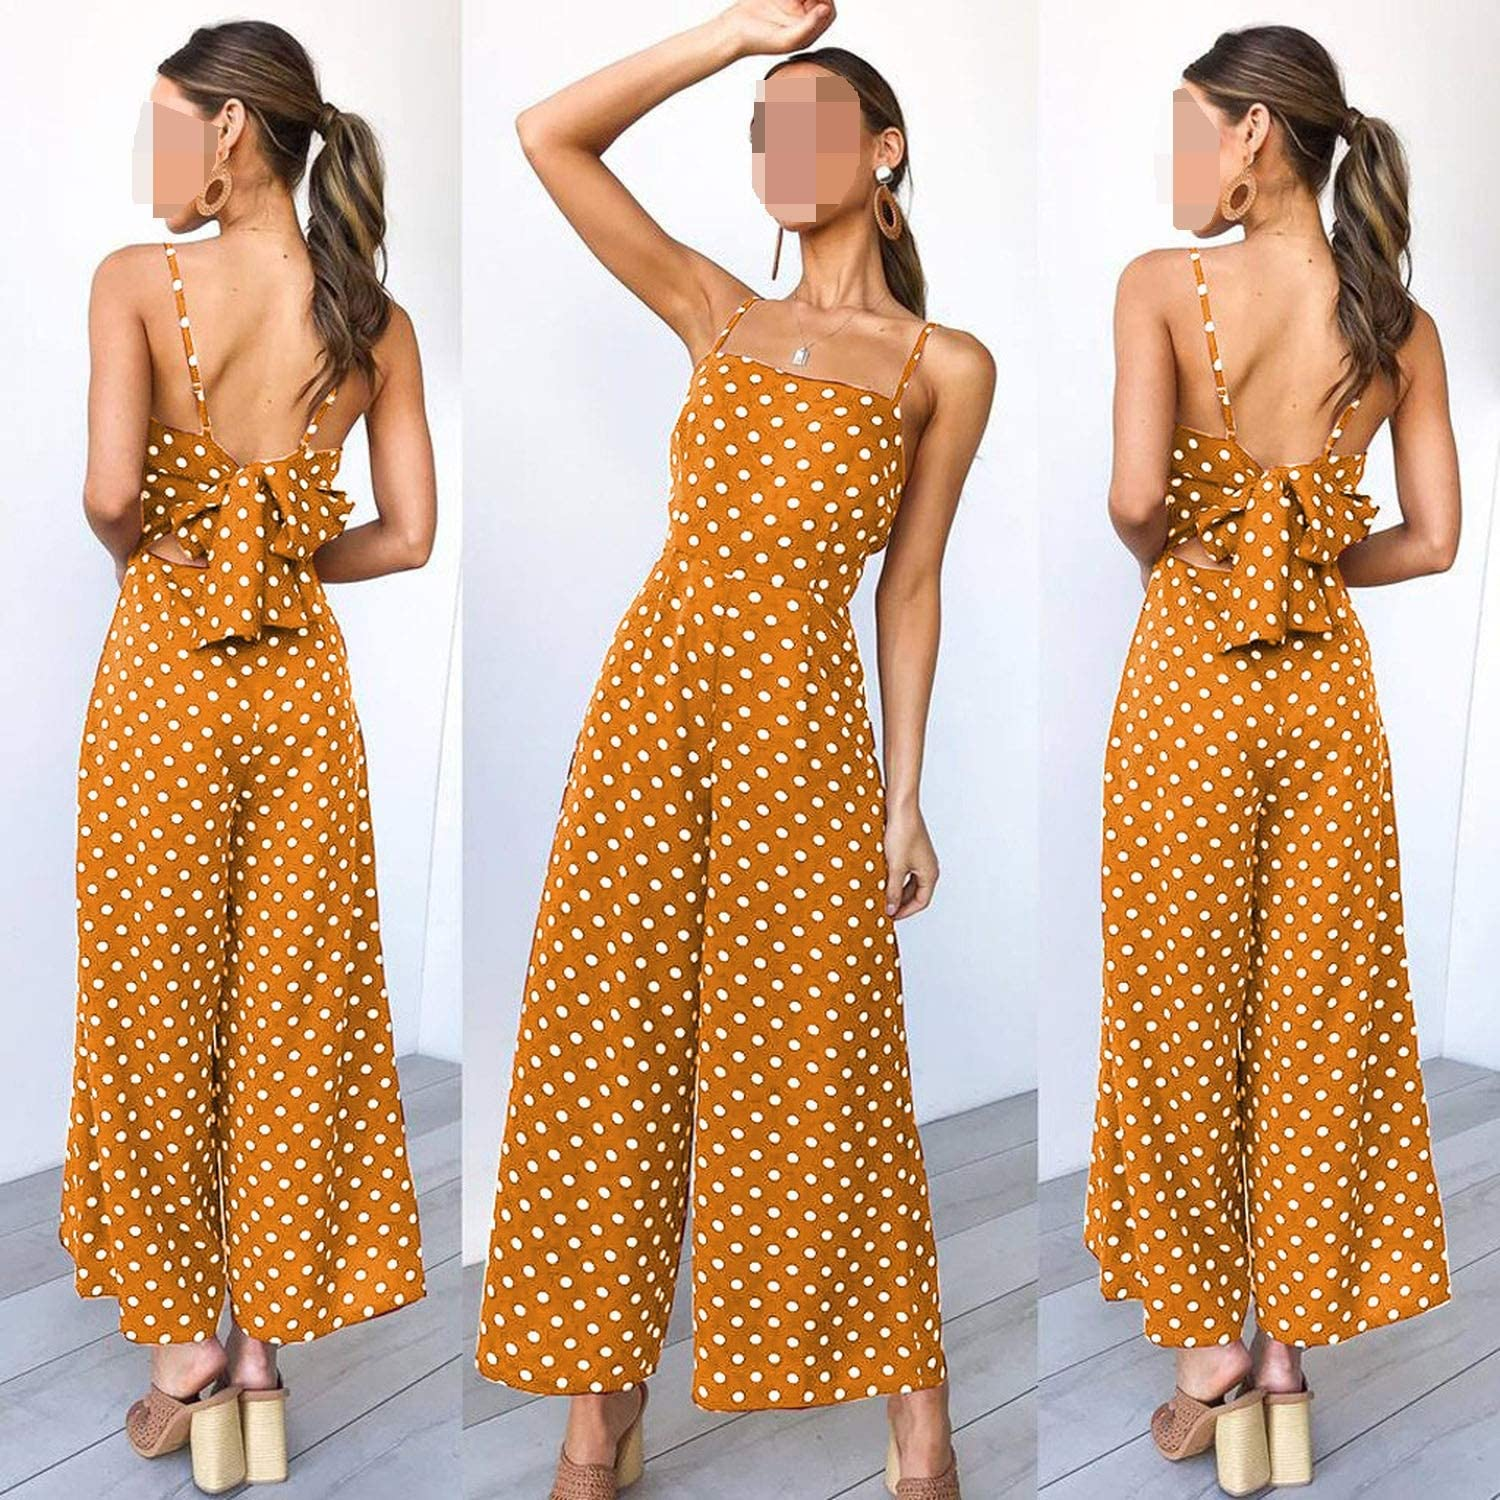 Bodysuit Women Summer Fashion Polka Dot Holiday Wide Leg Pants Long Jumpsuit M7,BK,XL